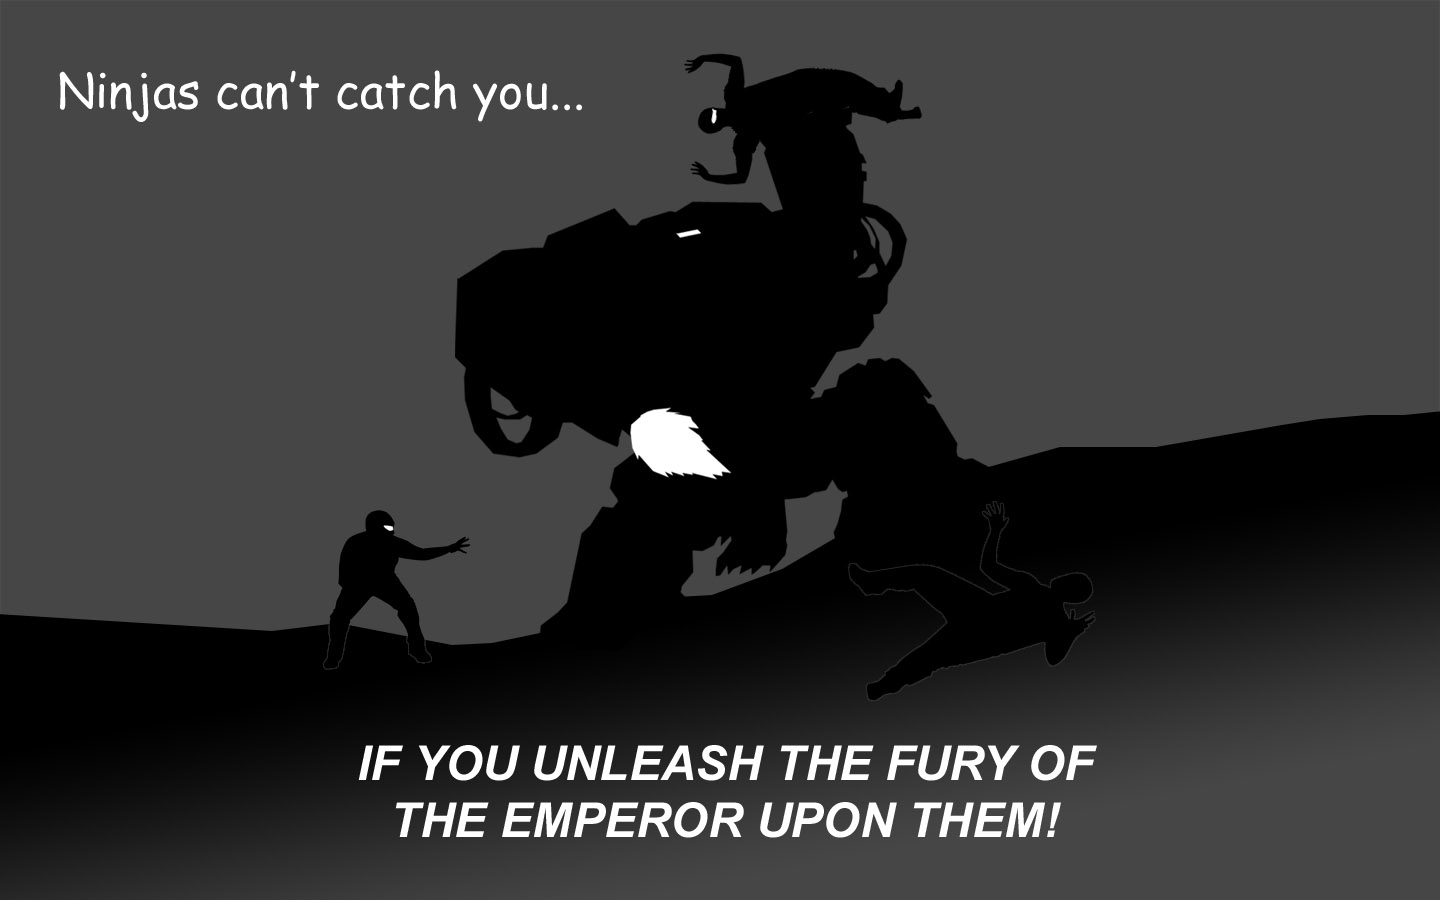 ninjas-cant-catch-you...-IF-YOU-UNLEASH-THE-FURY-OF-TH-EMPEROR-UPON-THEM.jpg